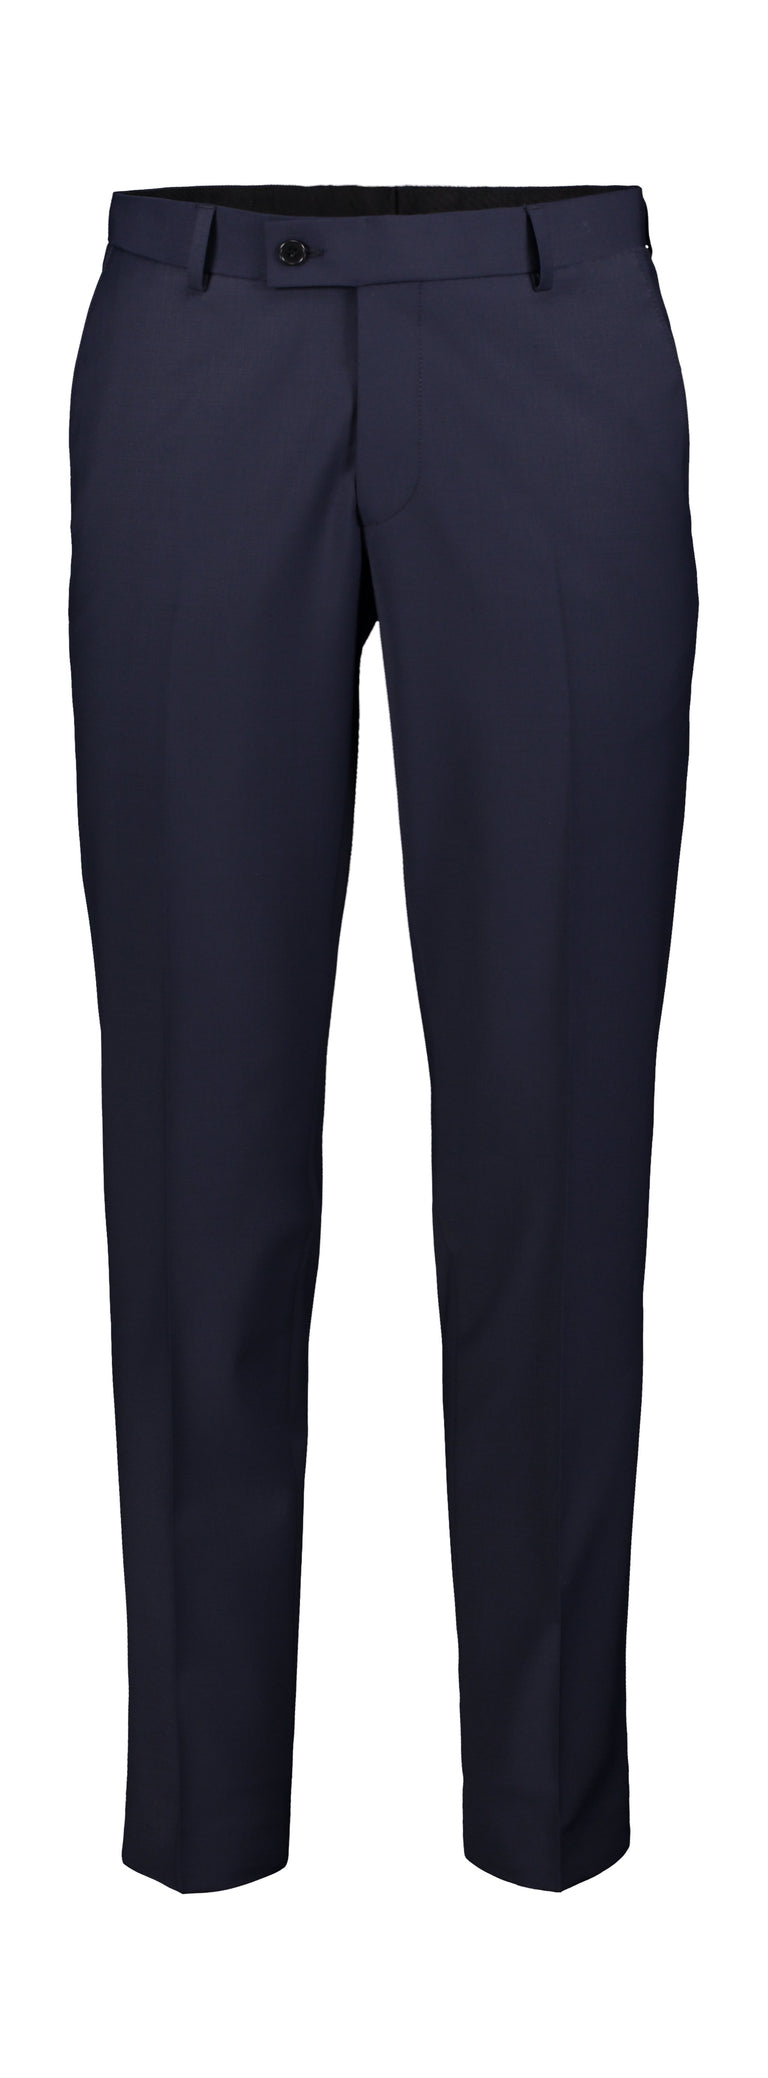 Athlete fit trousers navy